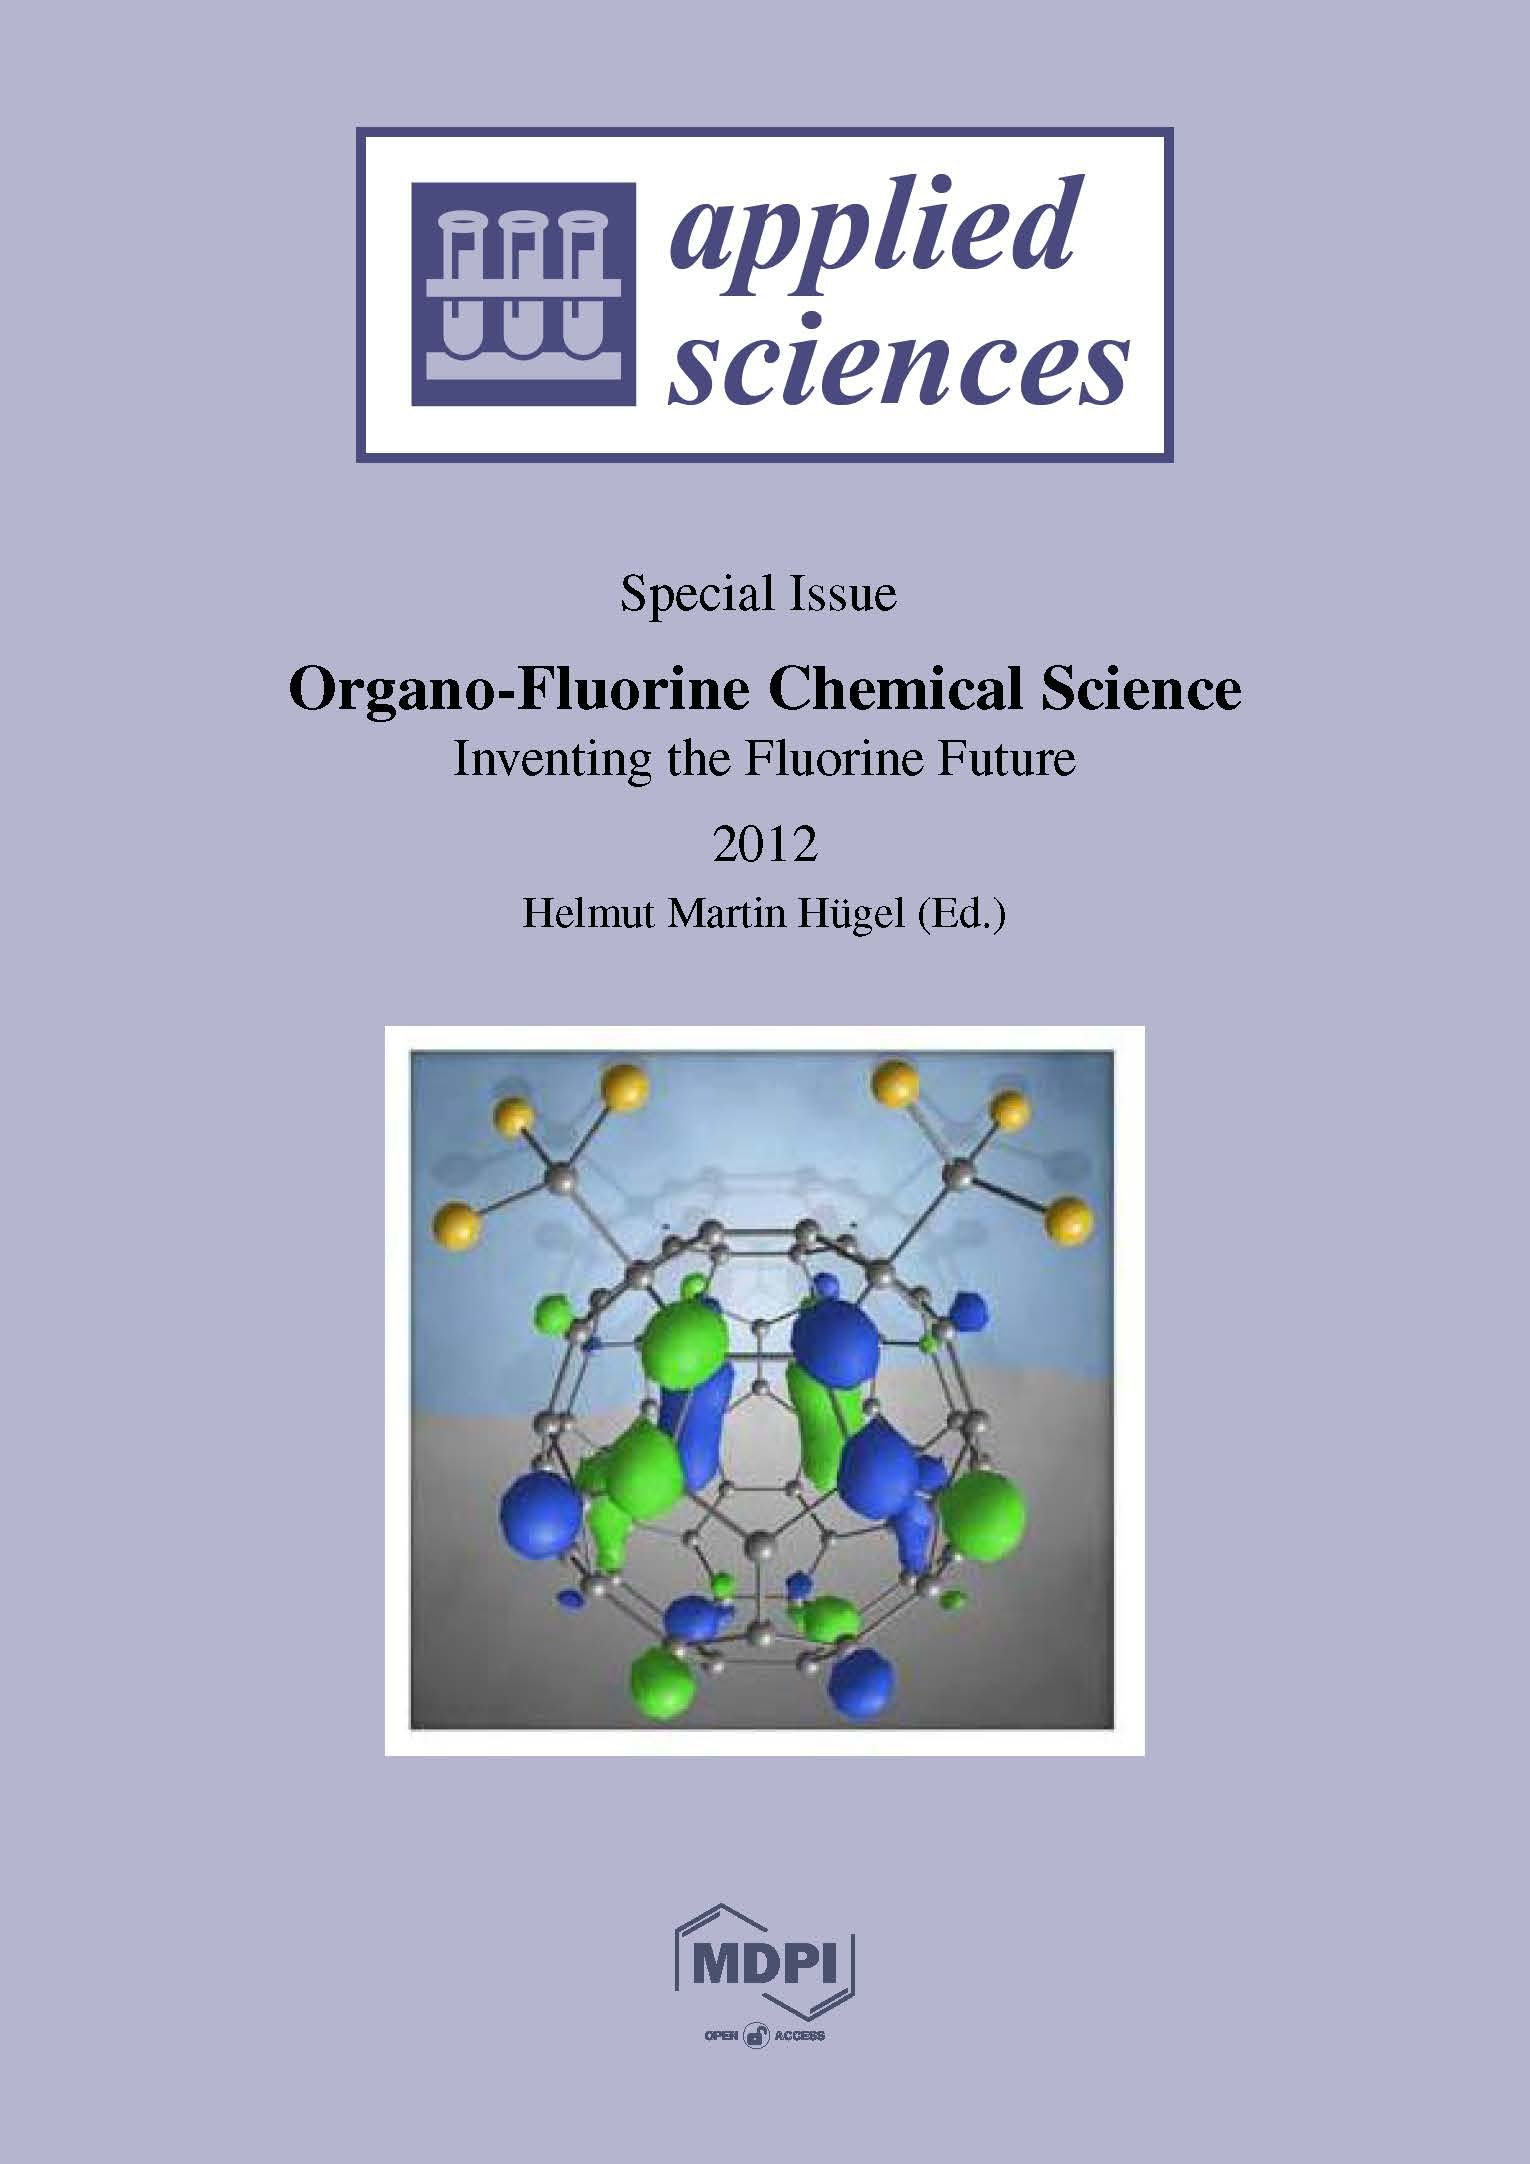 Organo-Fluorine Chemical Science